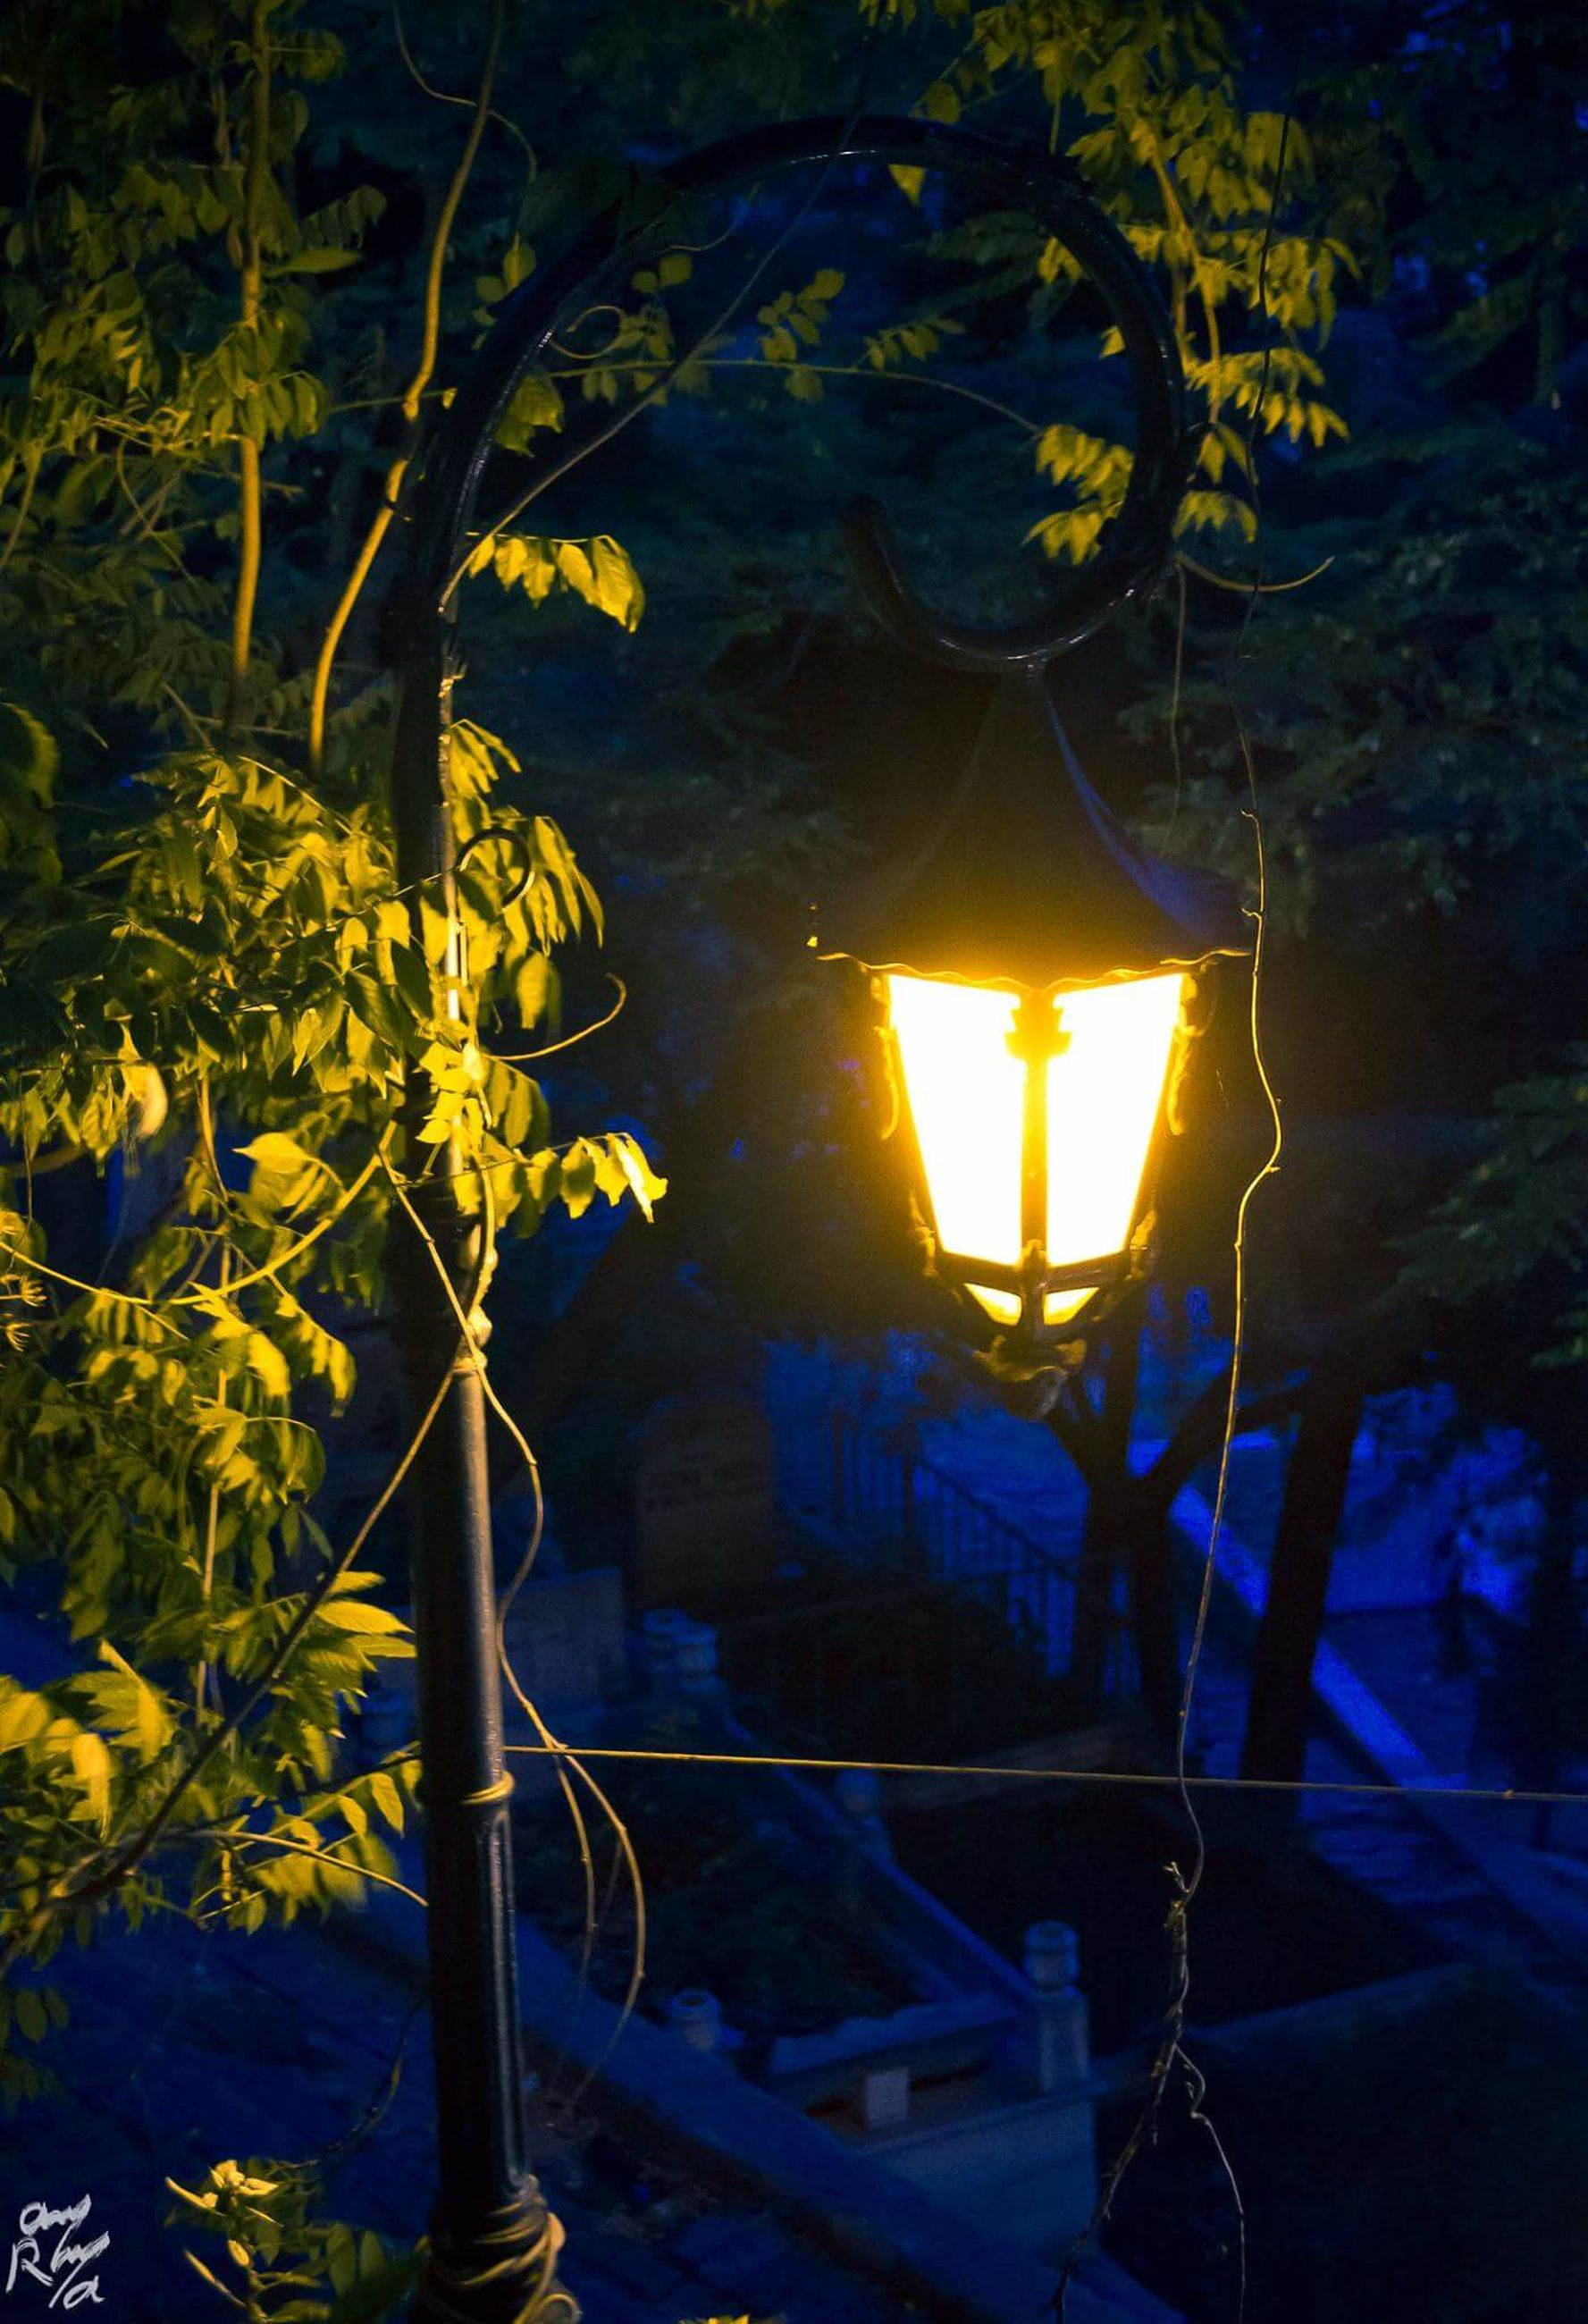 illuminated, night, yellow, no people, outdoors, electricity, tree, nature, close-up